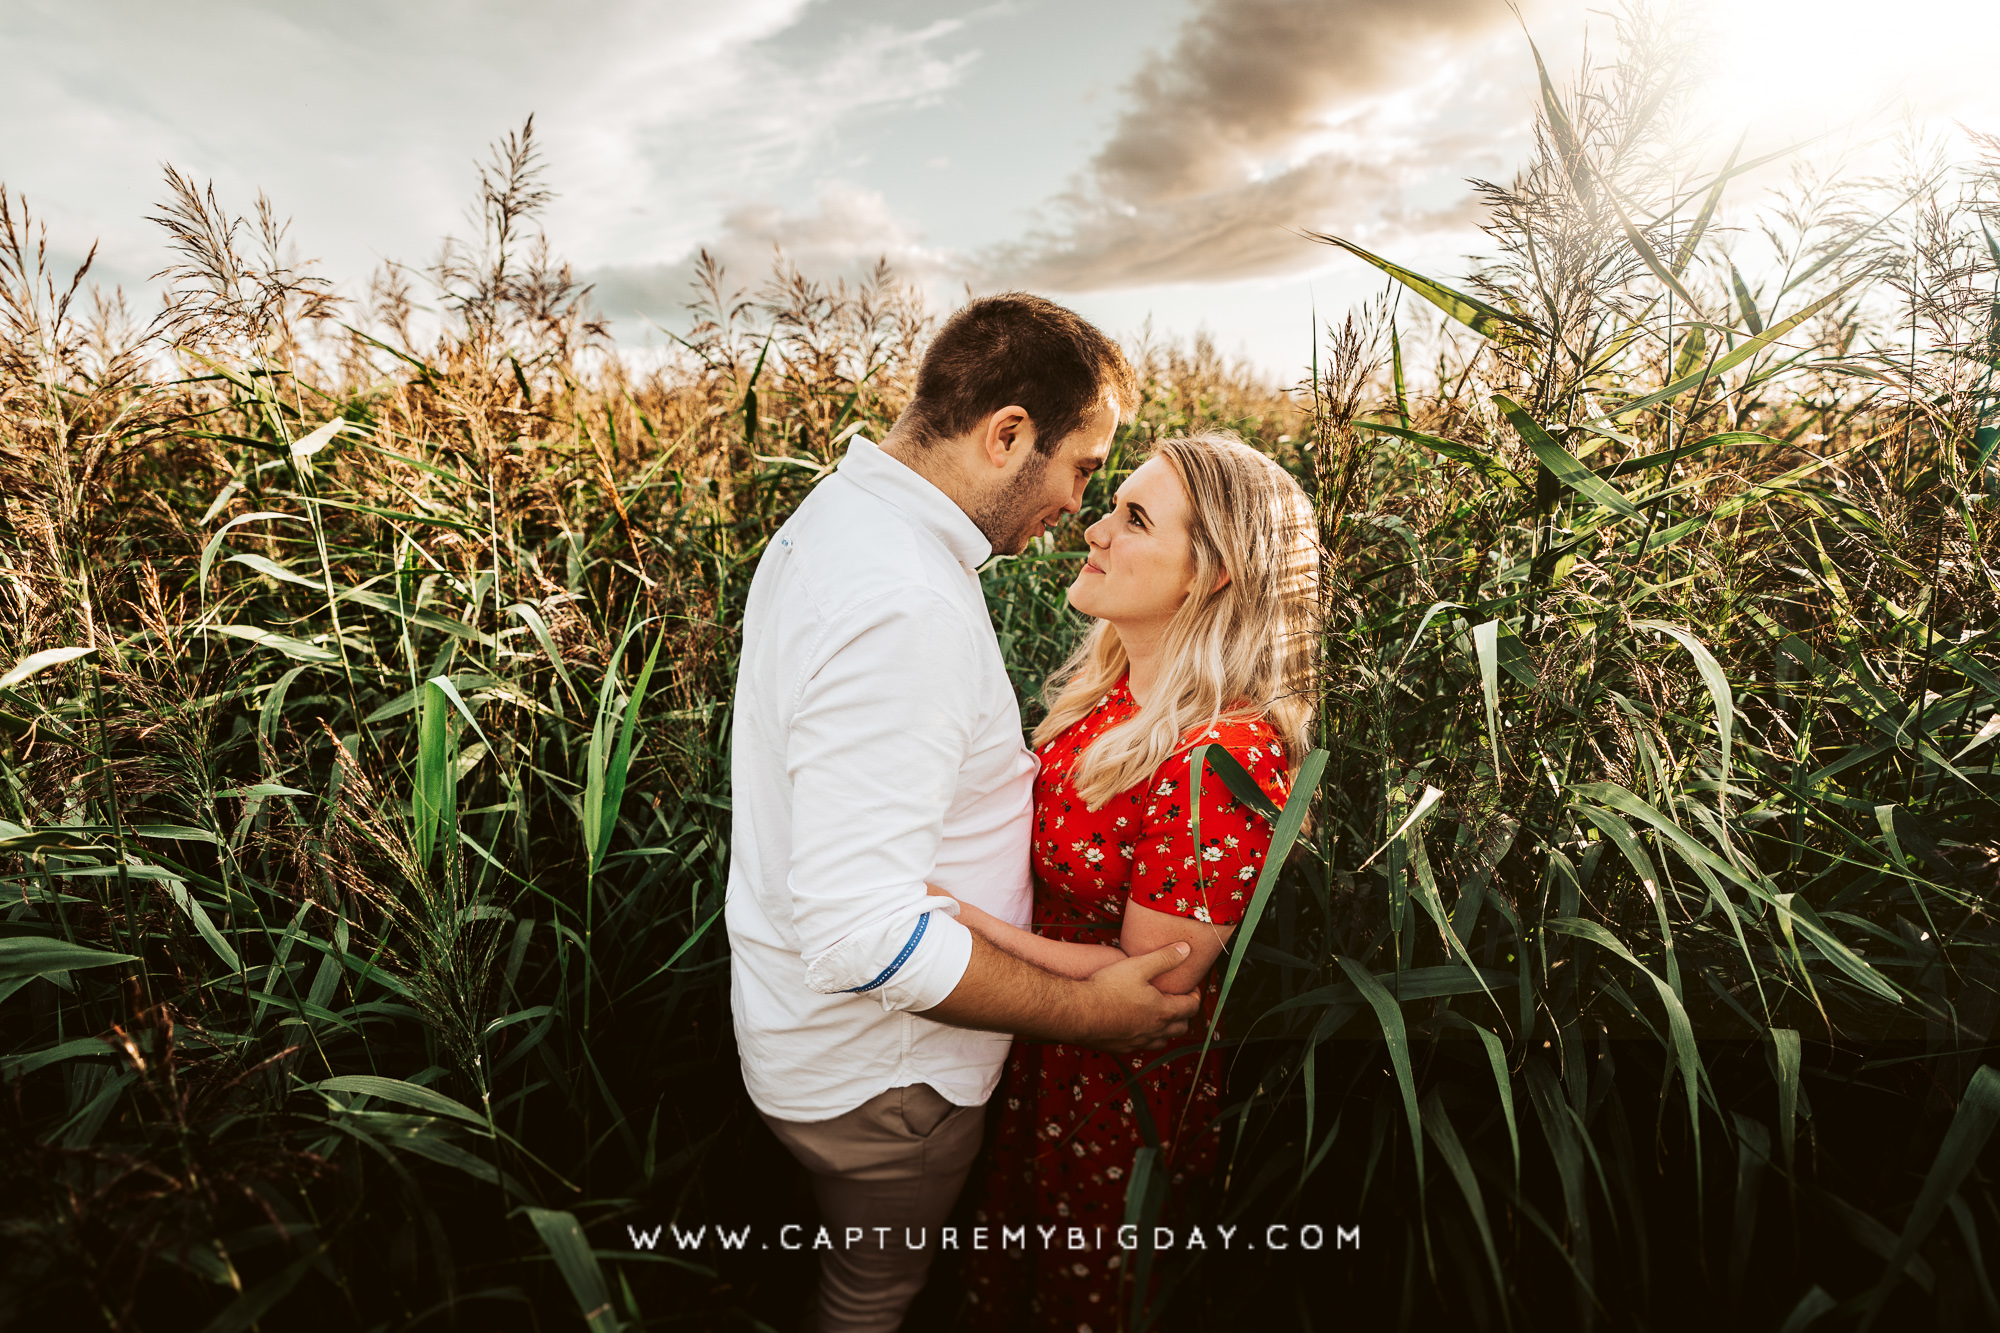 Engagement photo in the long grass